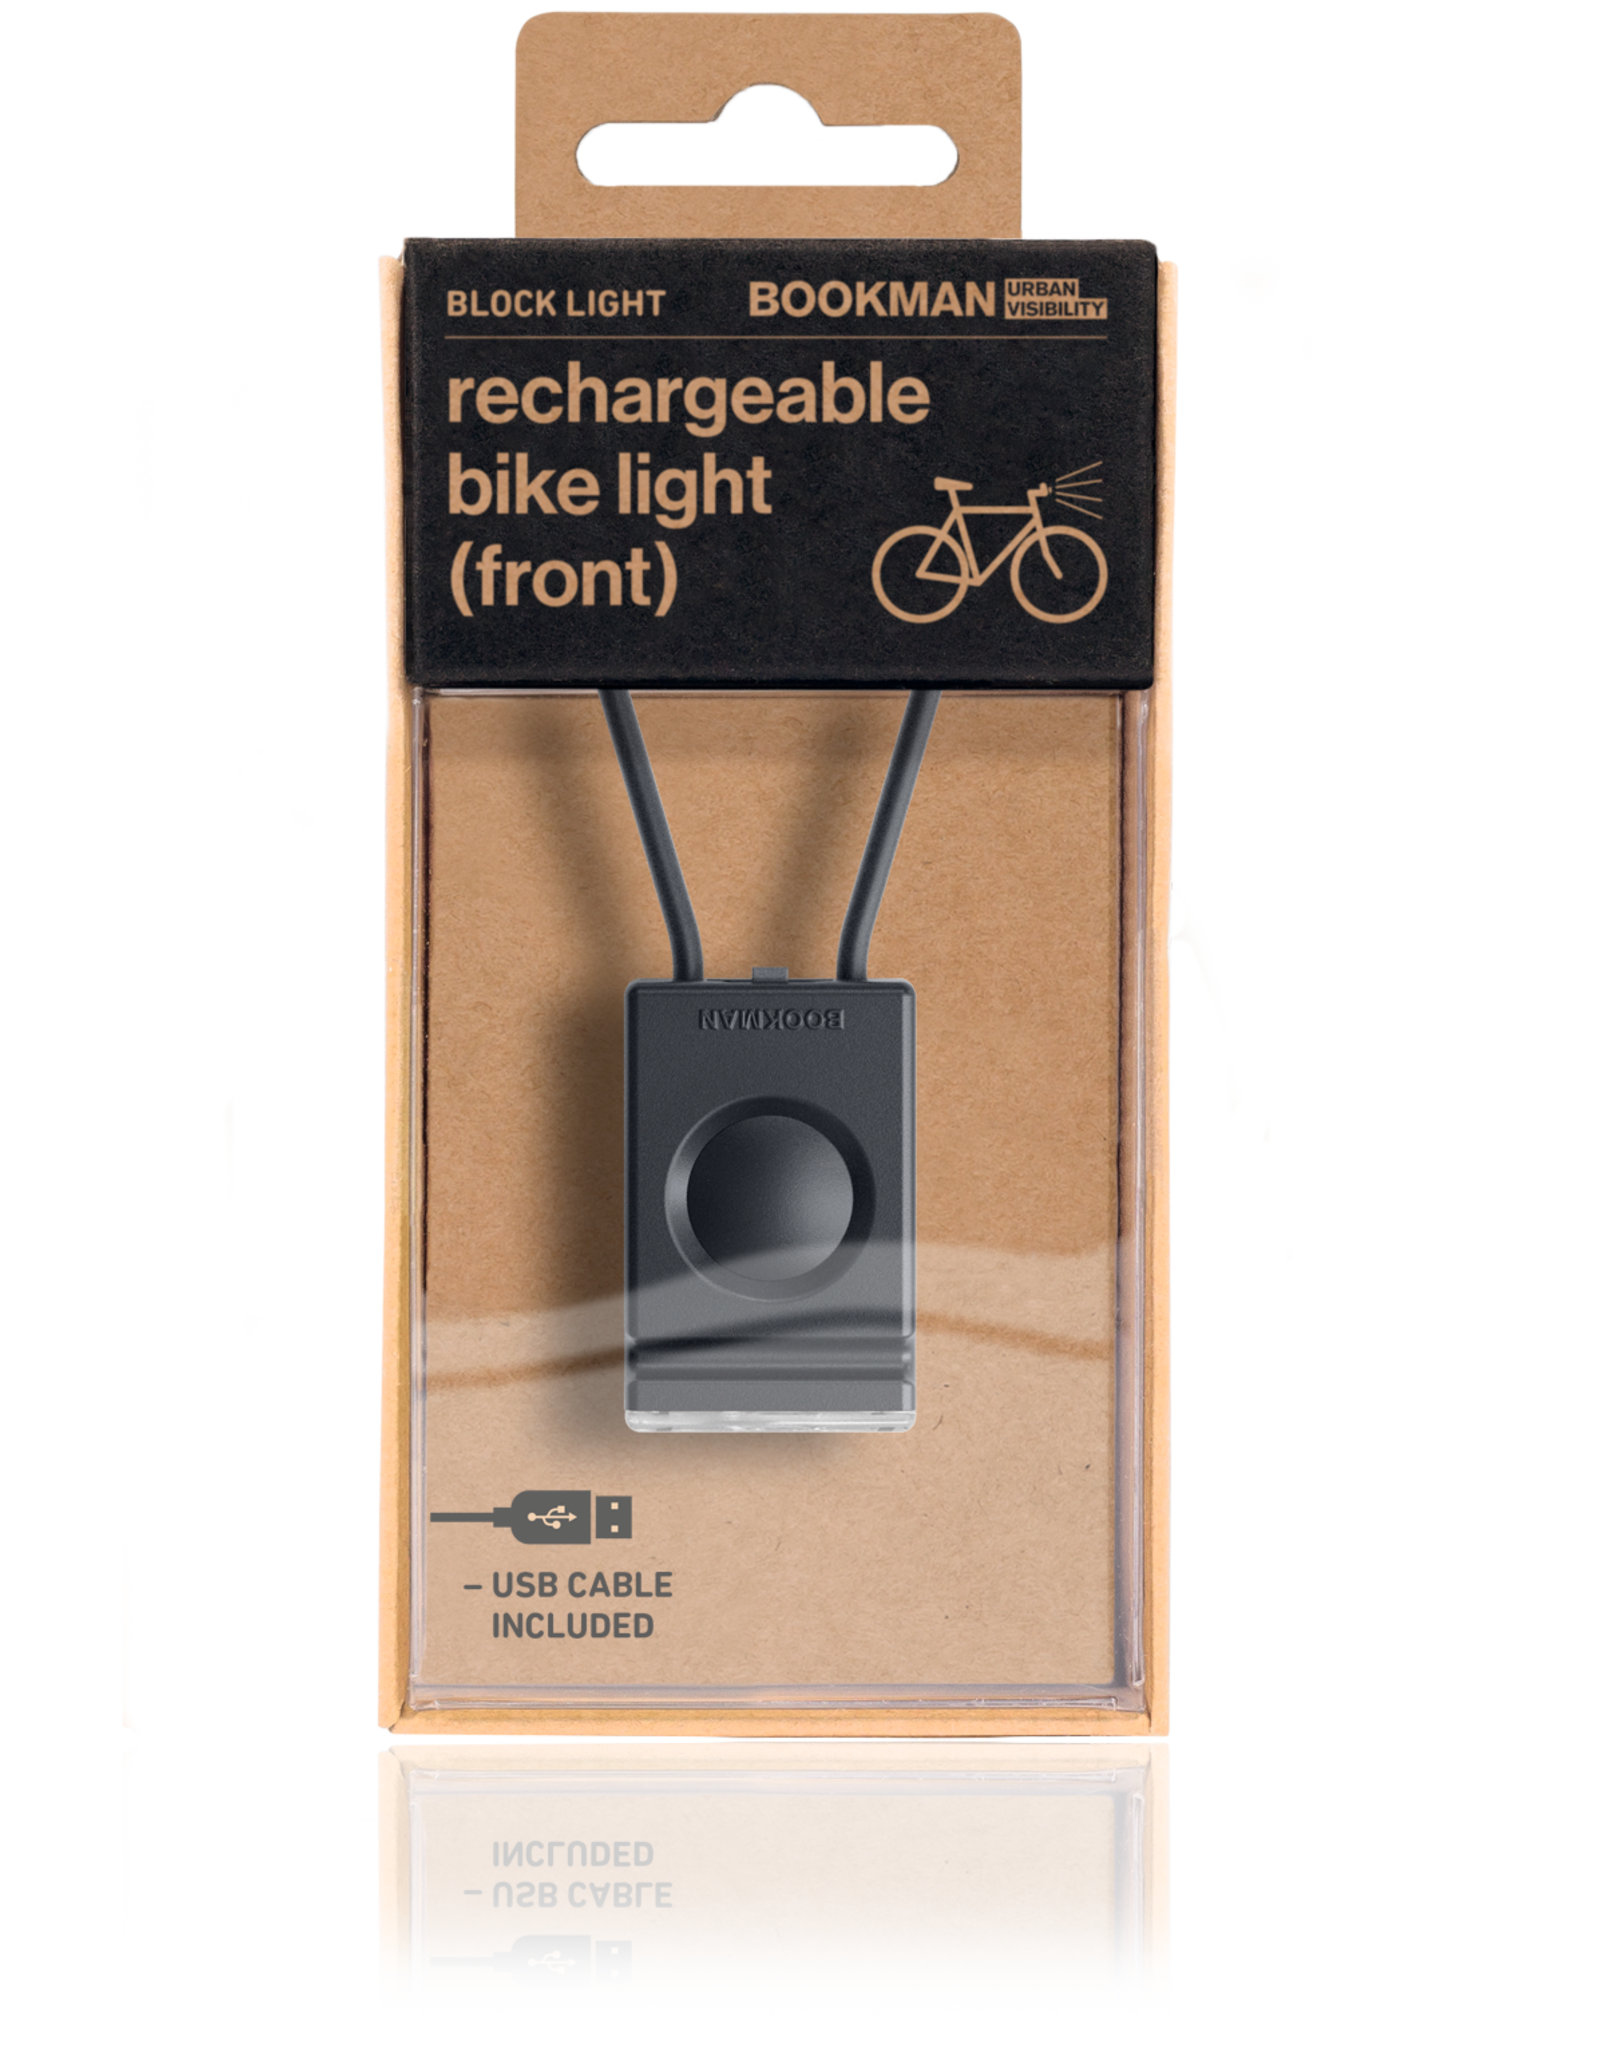 Bookman Block Light Front USB rechargeable